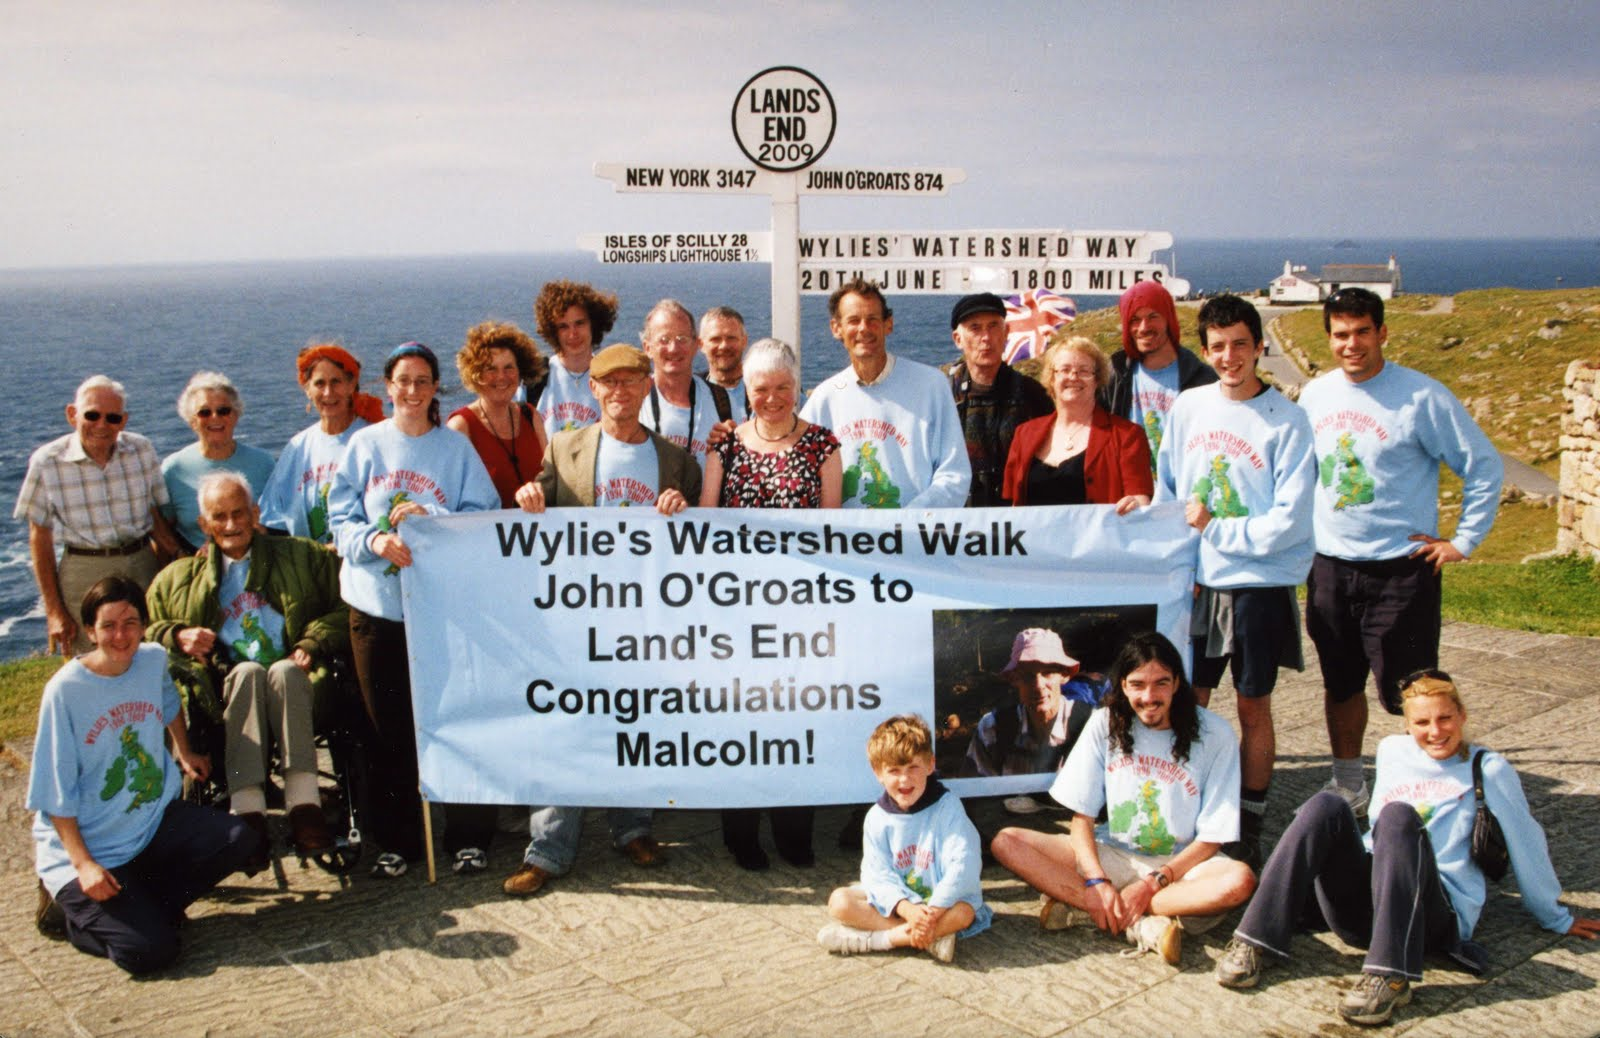 Wylies' Watershed Way